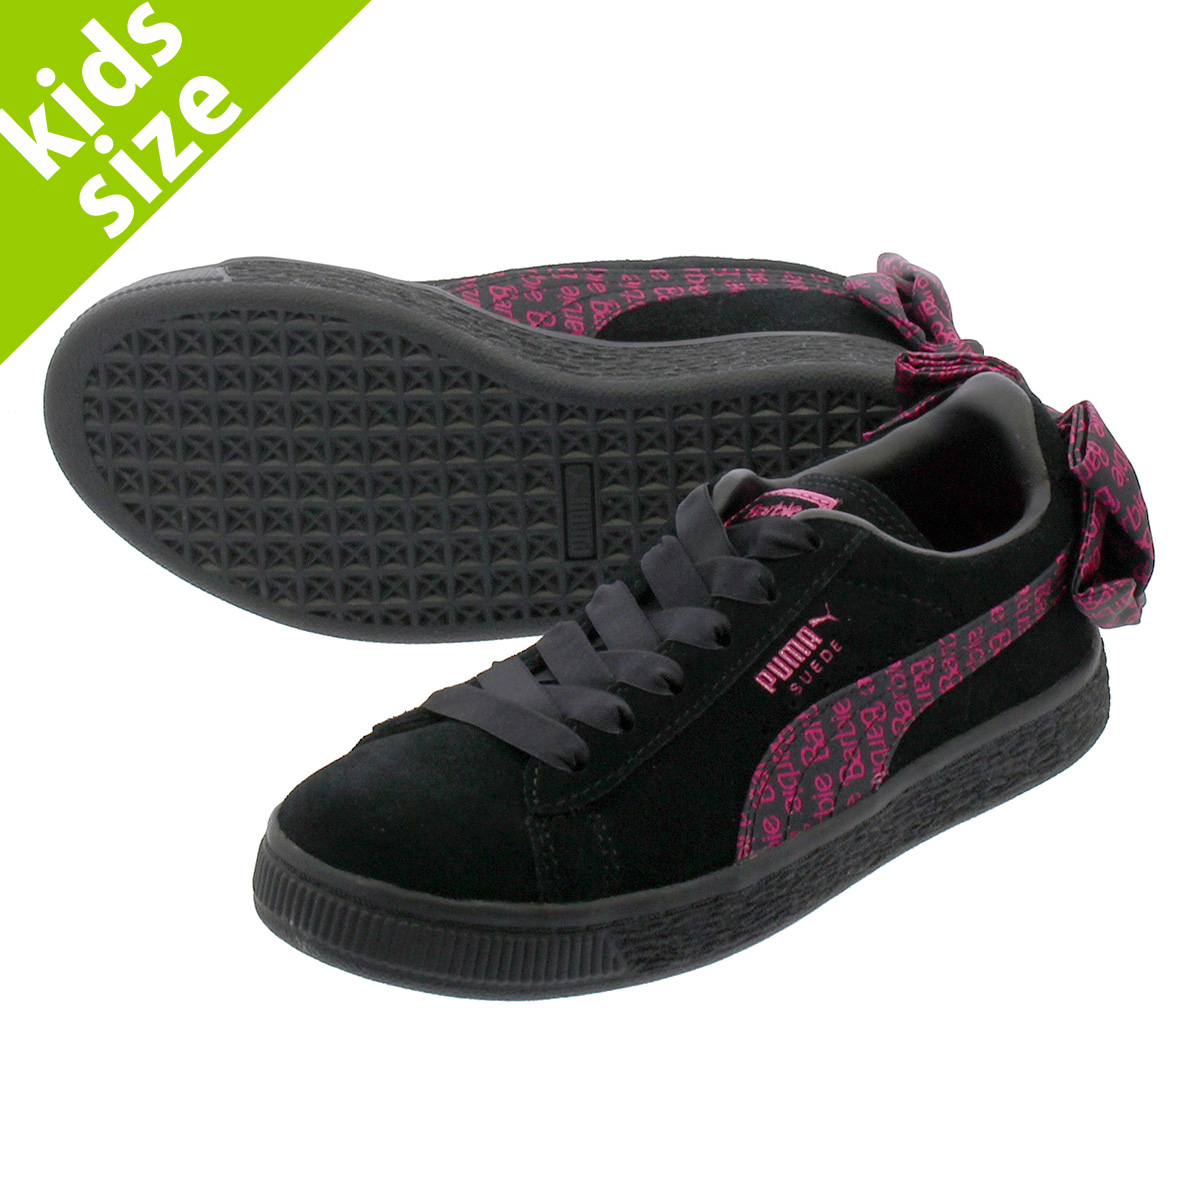 0927dd4542f LOWTEX PLUS  PUMA SUEDE CLASSIC X BARBIENODOLL P Puma suede cloth classical  music Barbie PUMA BLACK 366